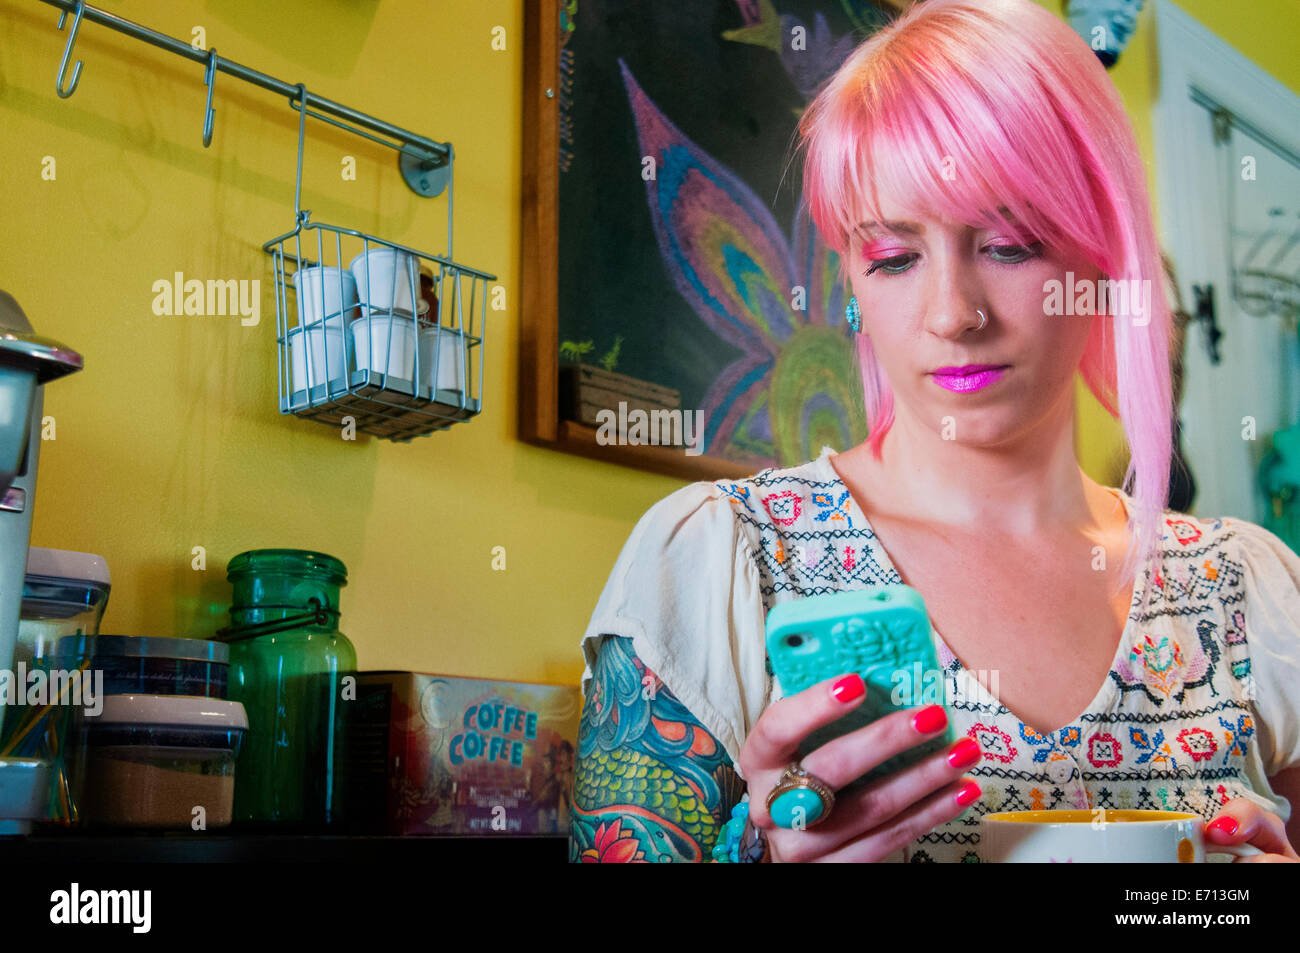 Young woman with pink hair reading text message on smartphone in kitchen - Stock Image